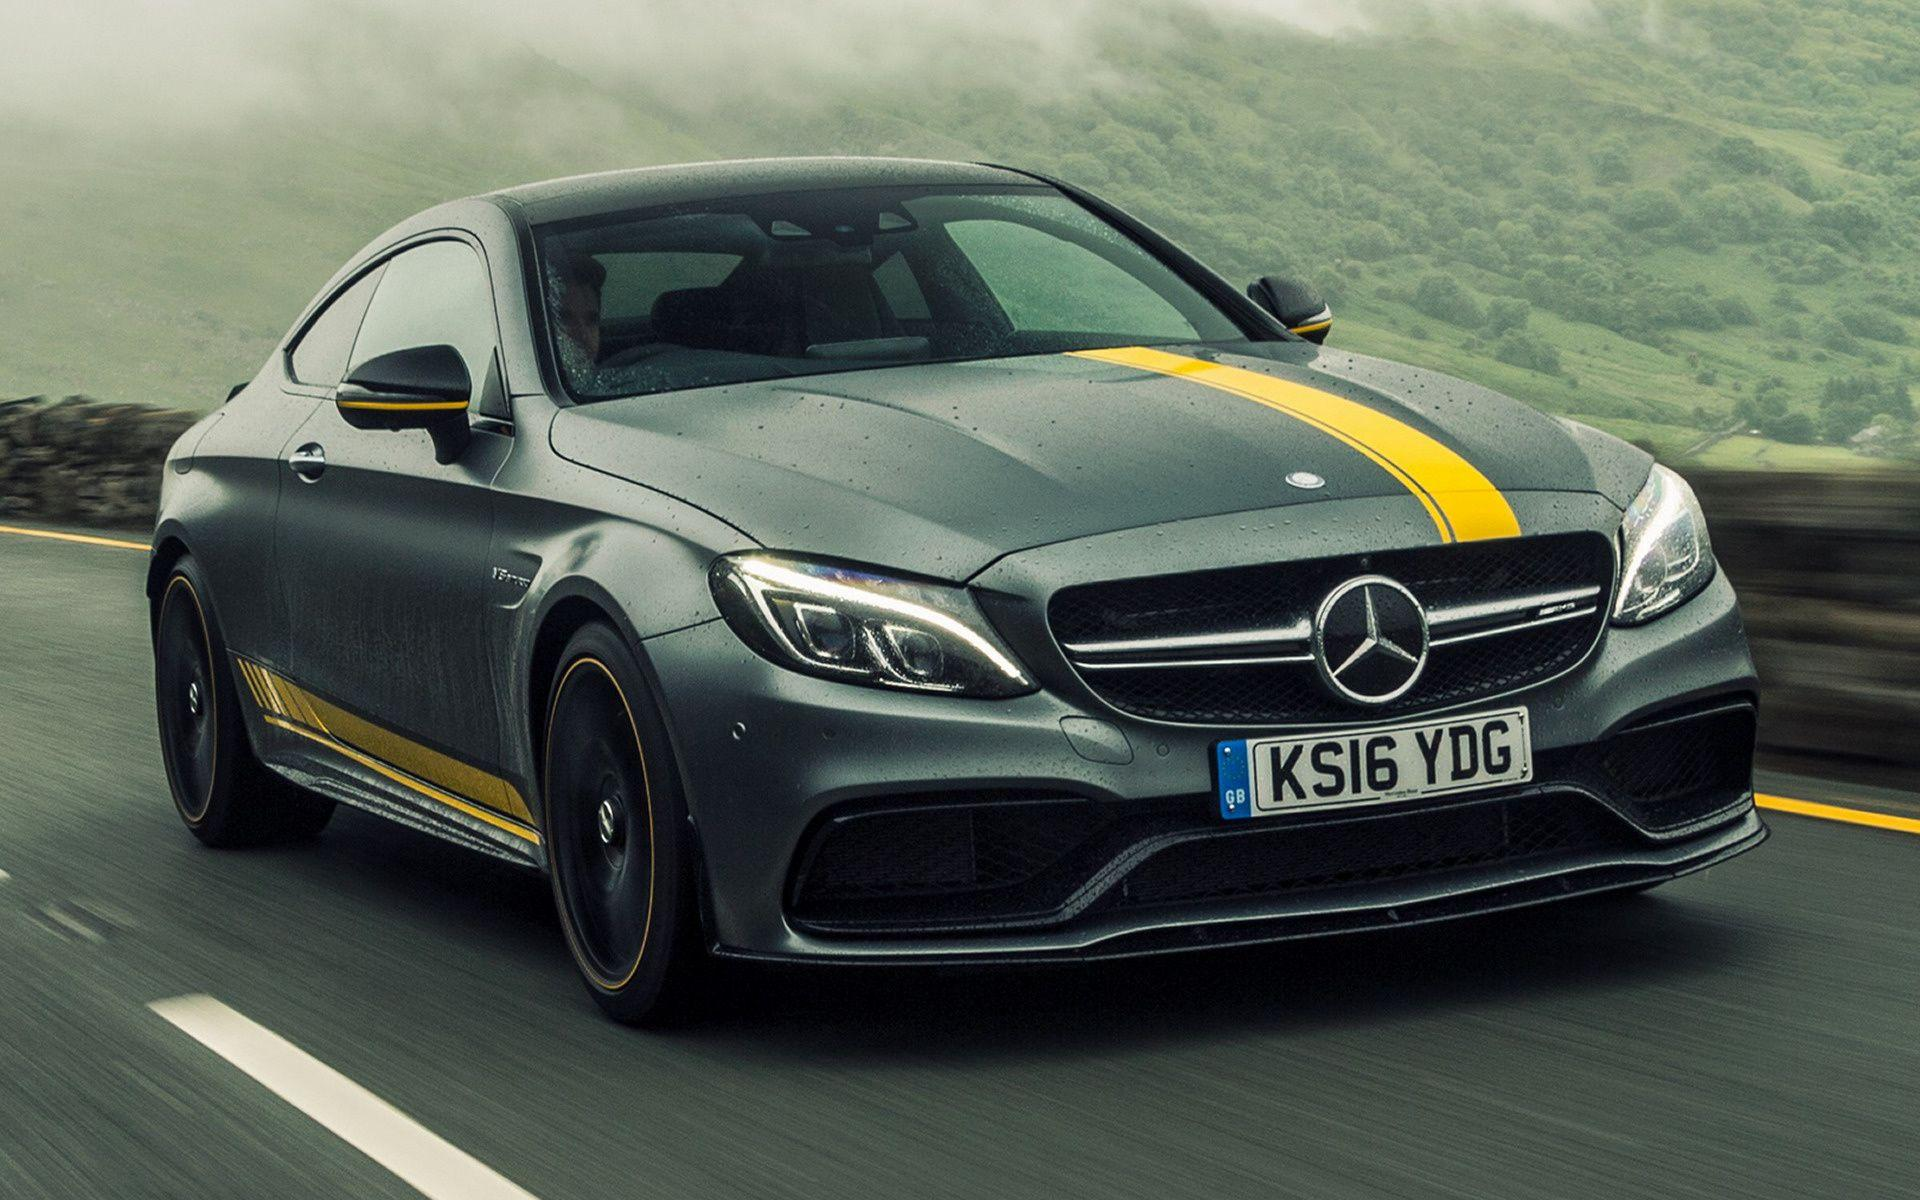 Mercedes-AMG C 63 S Coupe Edition 1 (2016) UK Wallpapers and HD